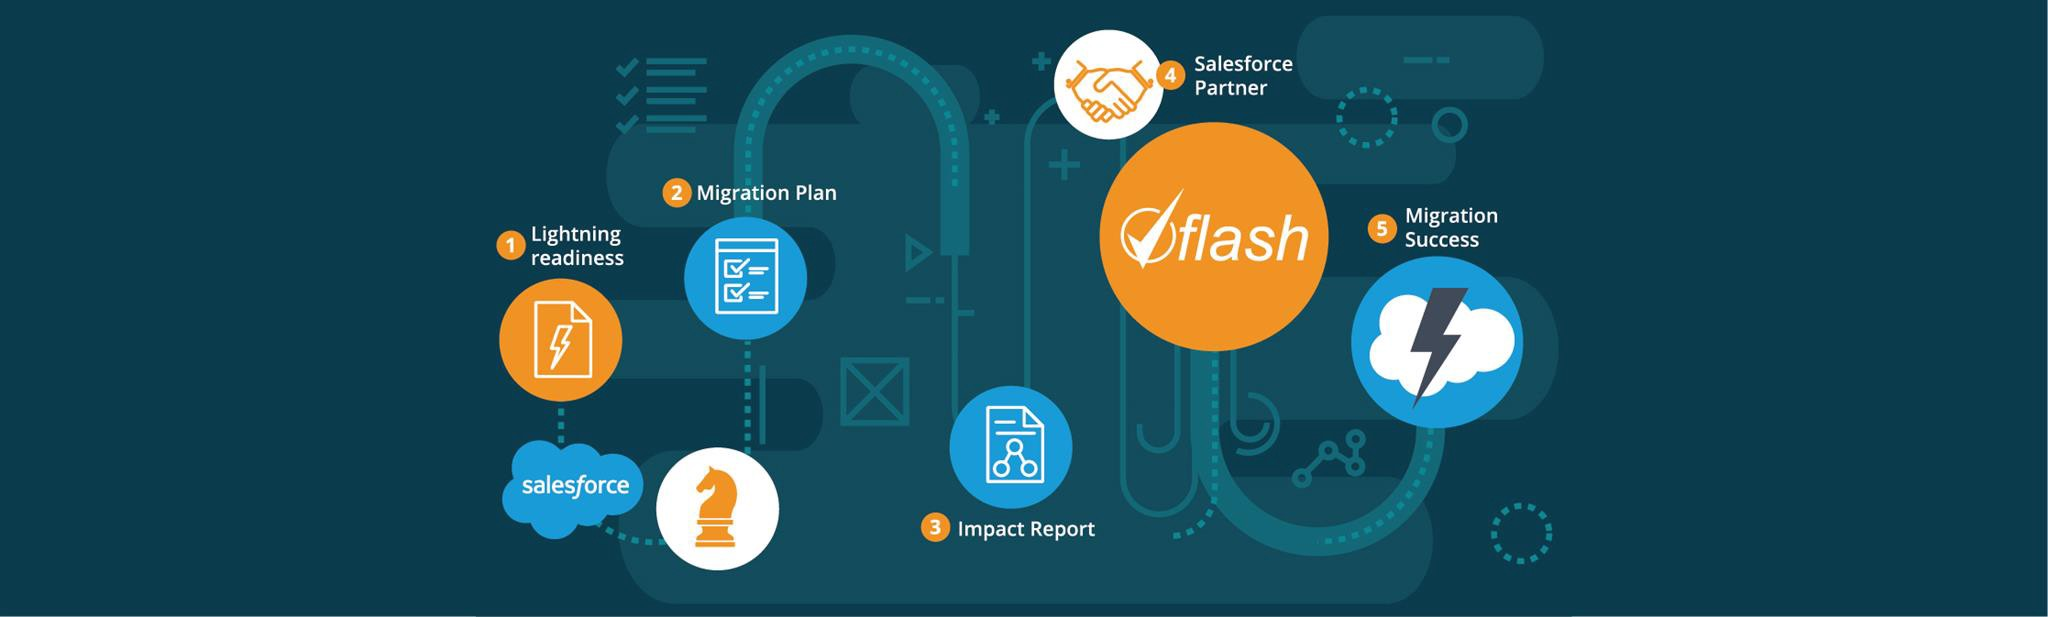 Salesforce Classic to Lightning is just a click away with Flash